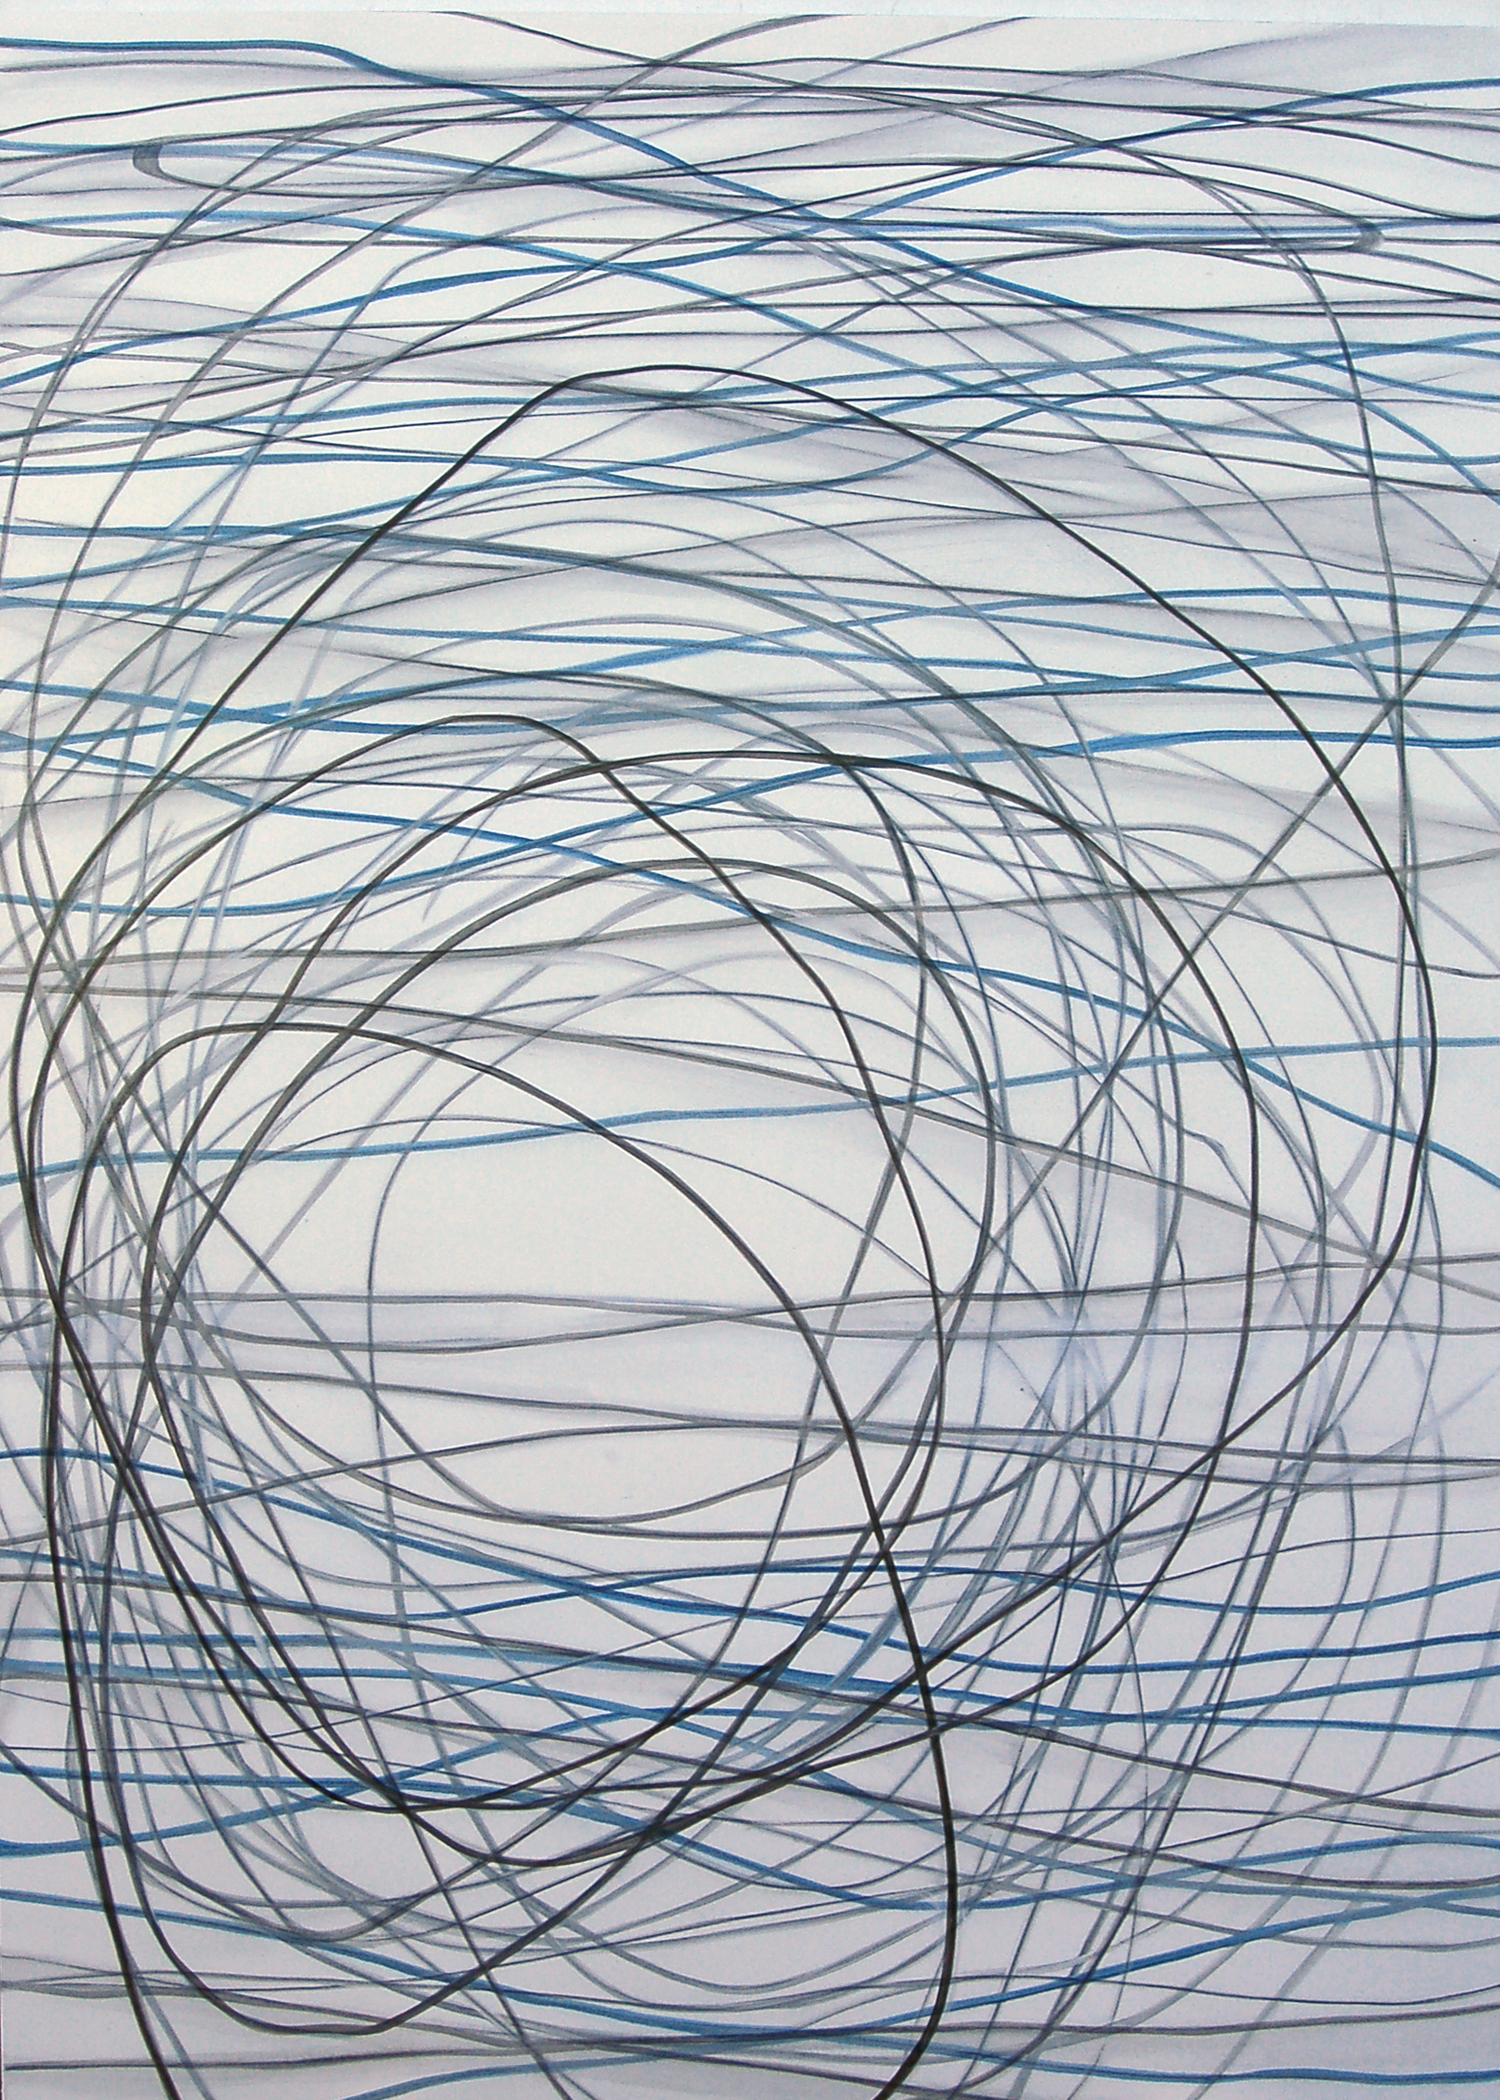 18393 Black and Blue lines in White - All Gounding - Mixed media on canvas - 84 x 60 inches